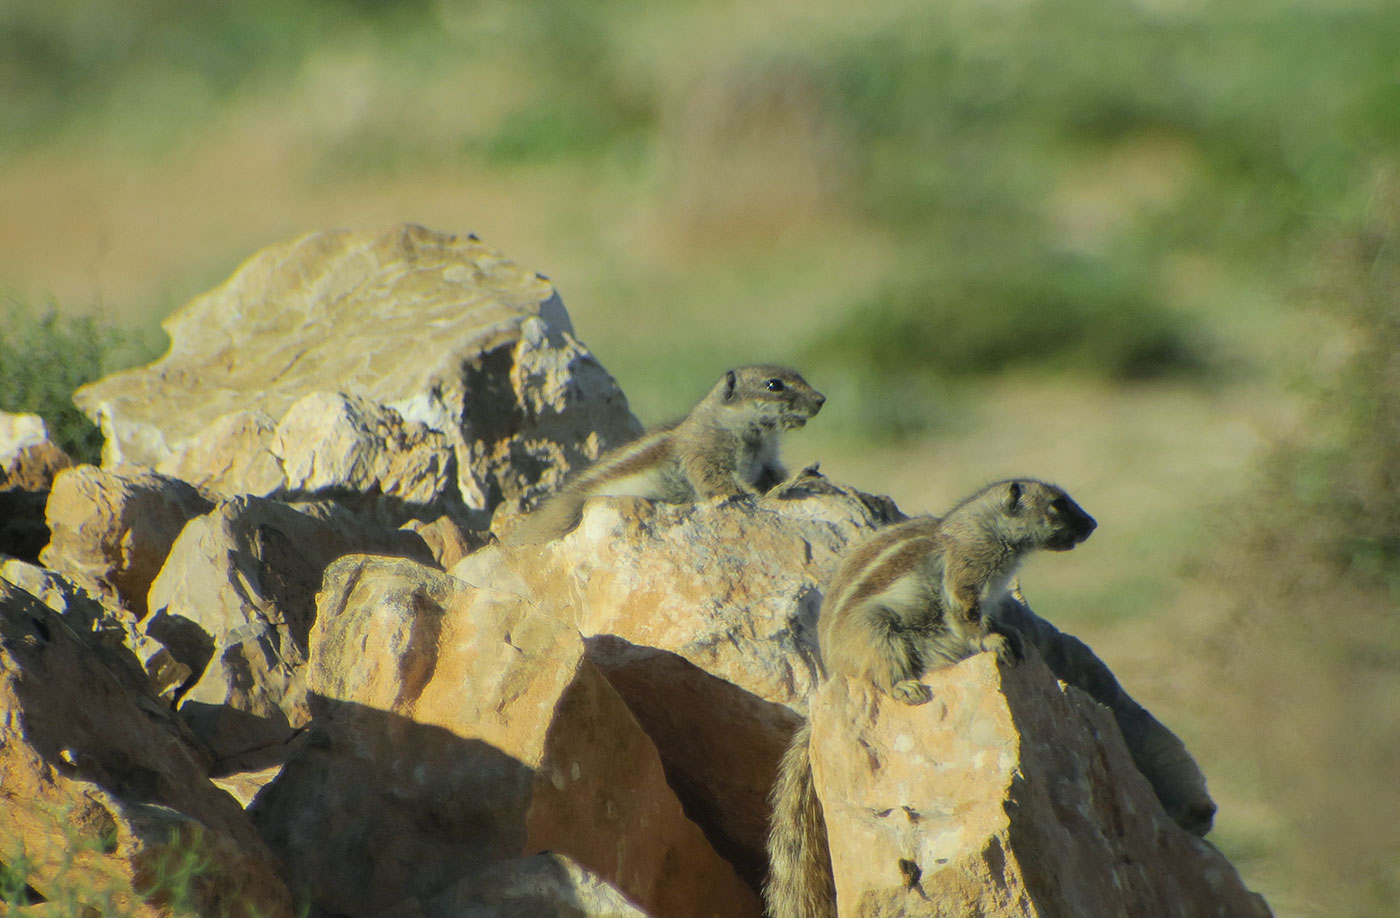 10_atlashoernchen_barbary-ground-squirrel_sidi-wassay_marokko_2018-11-24_3538